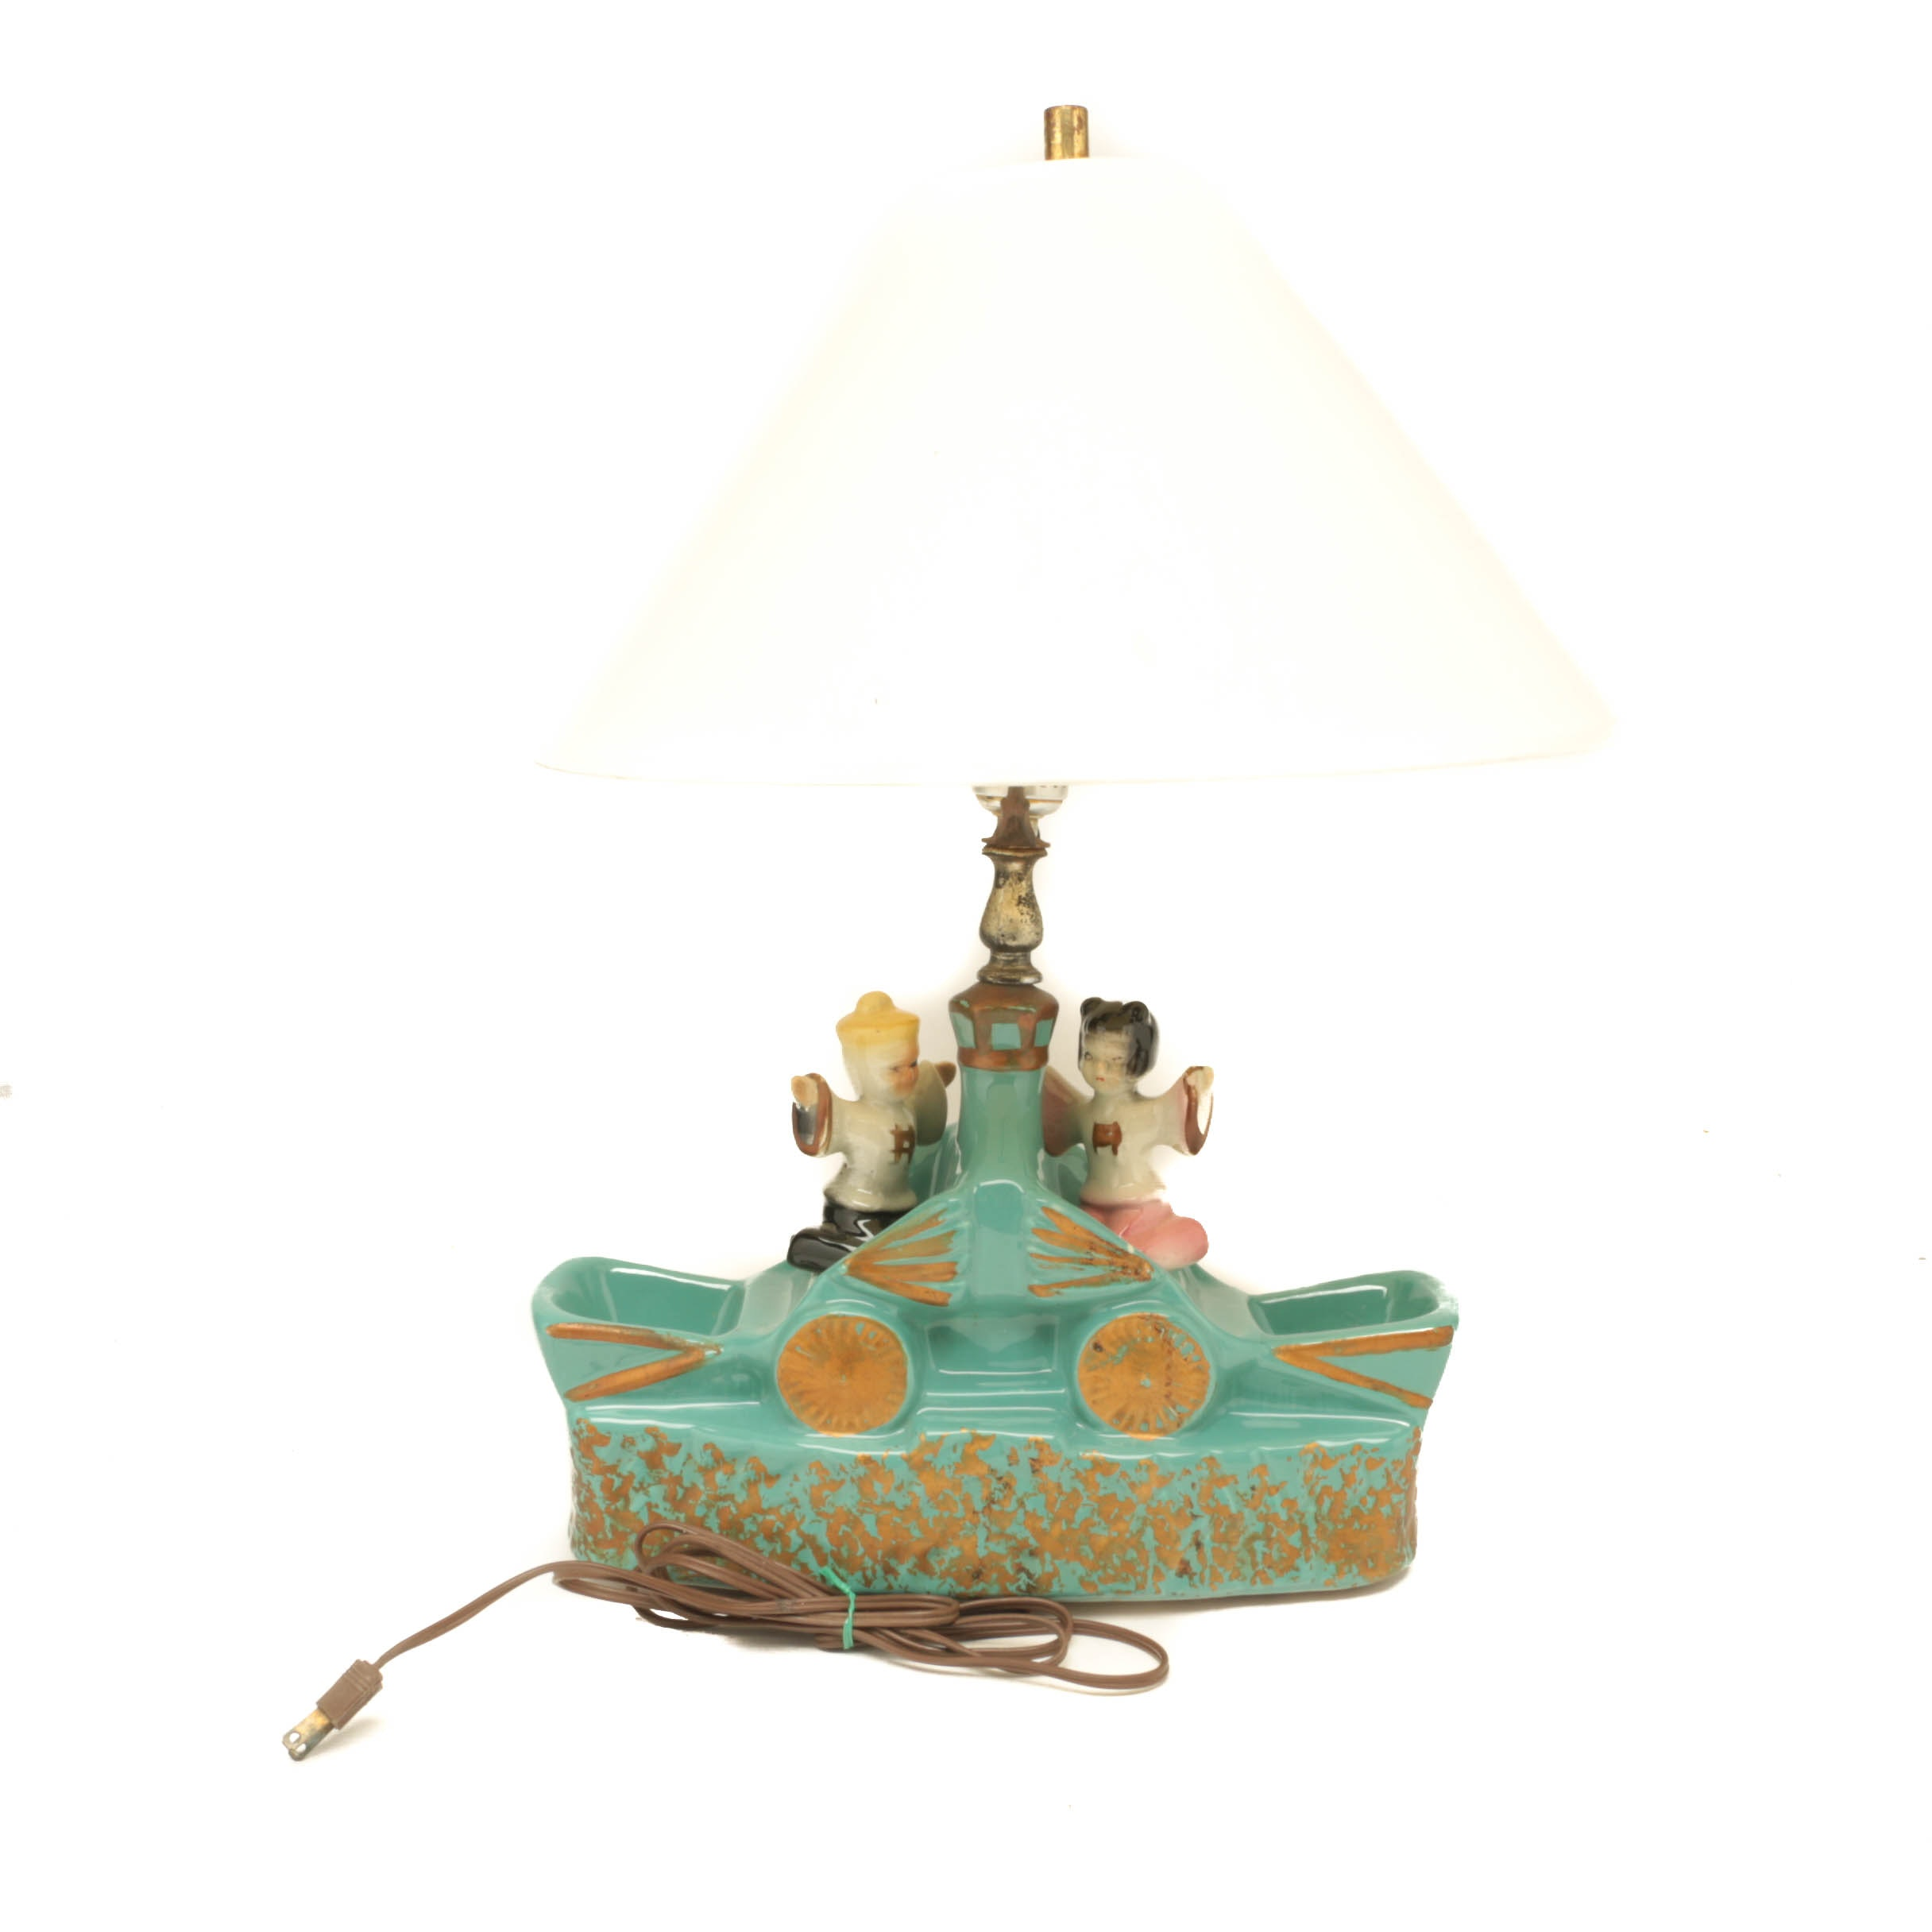 Ceramic Lamp with Japanese Figures